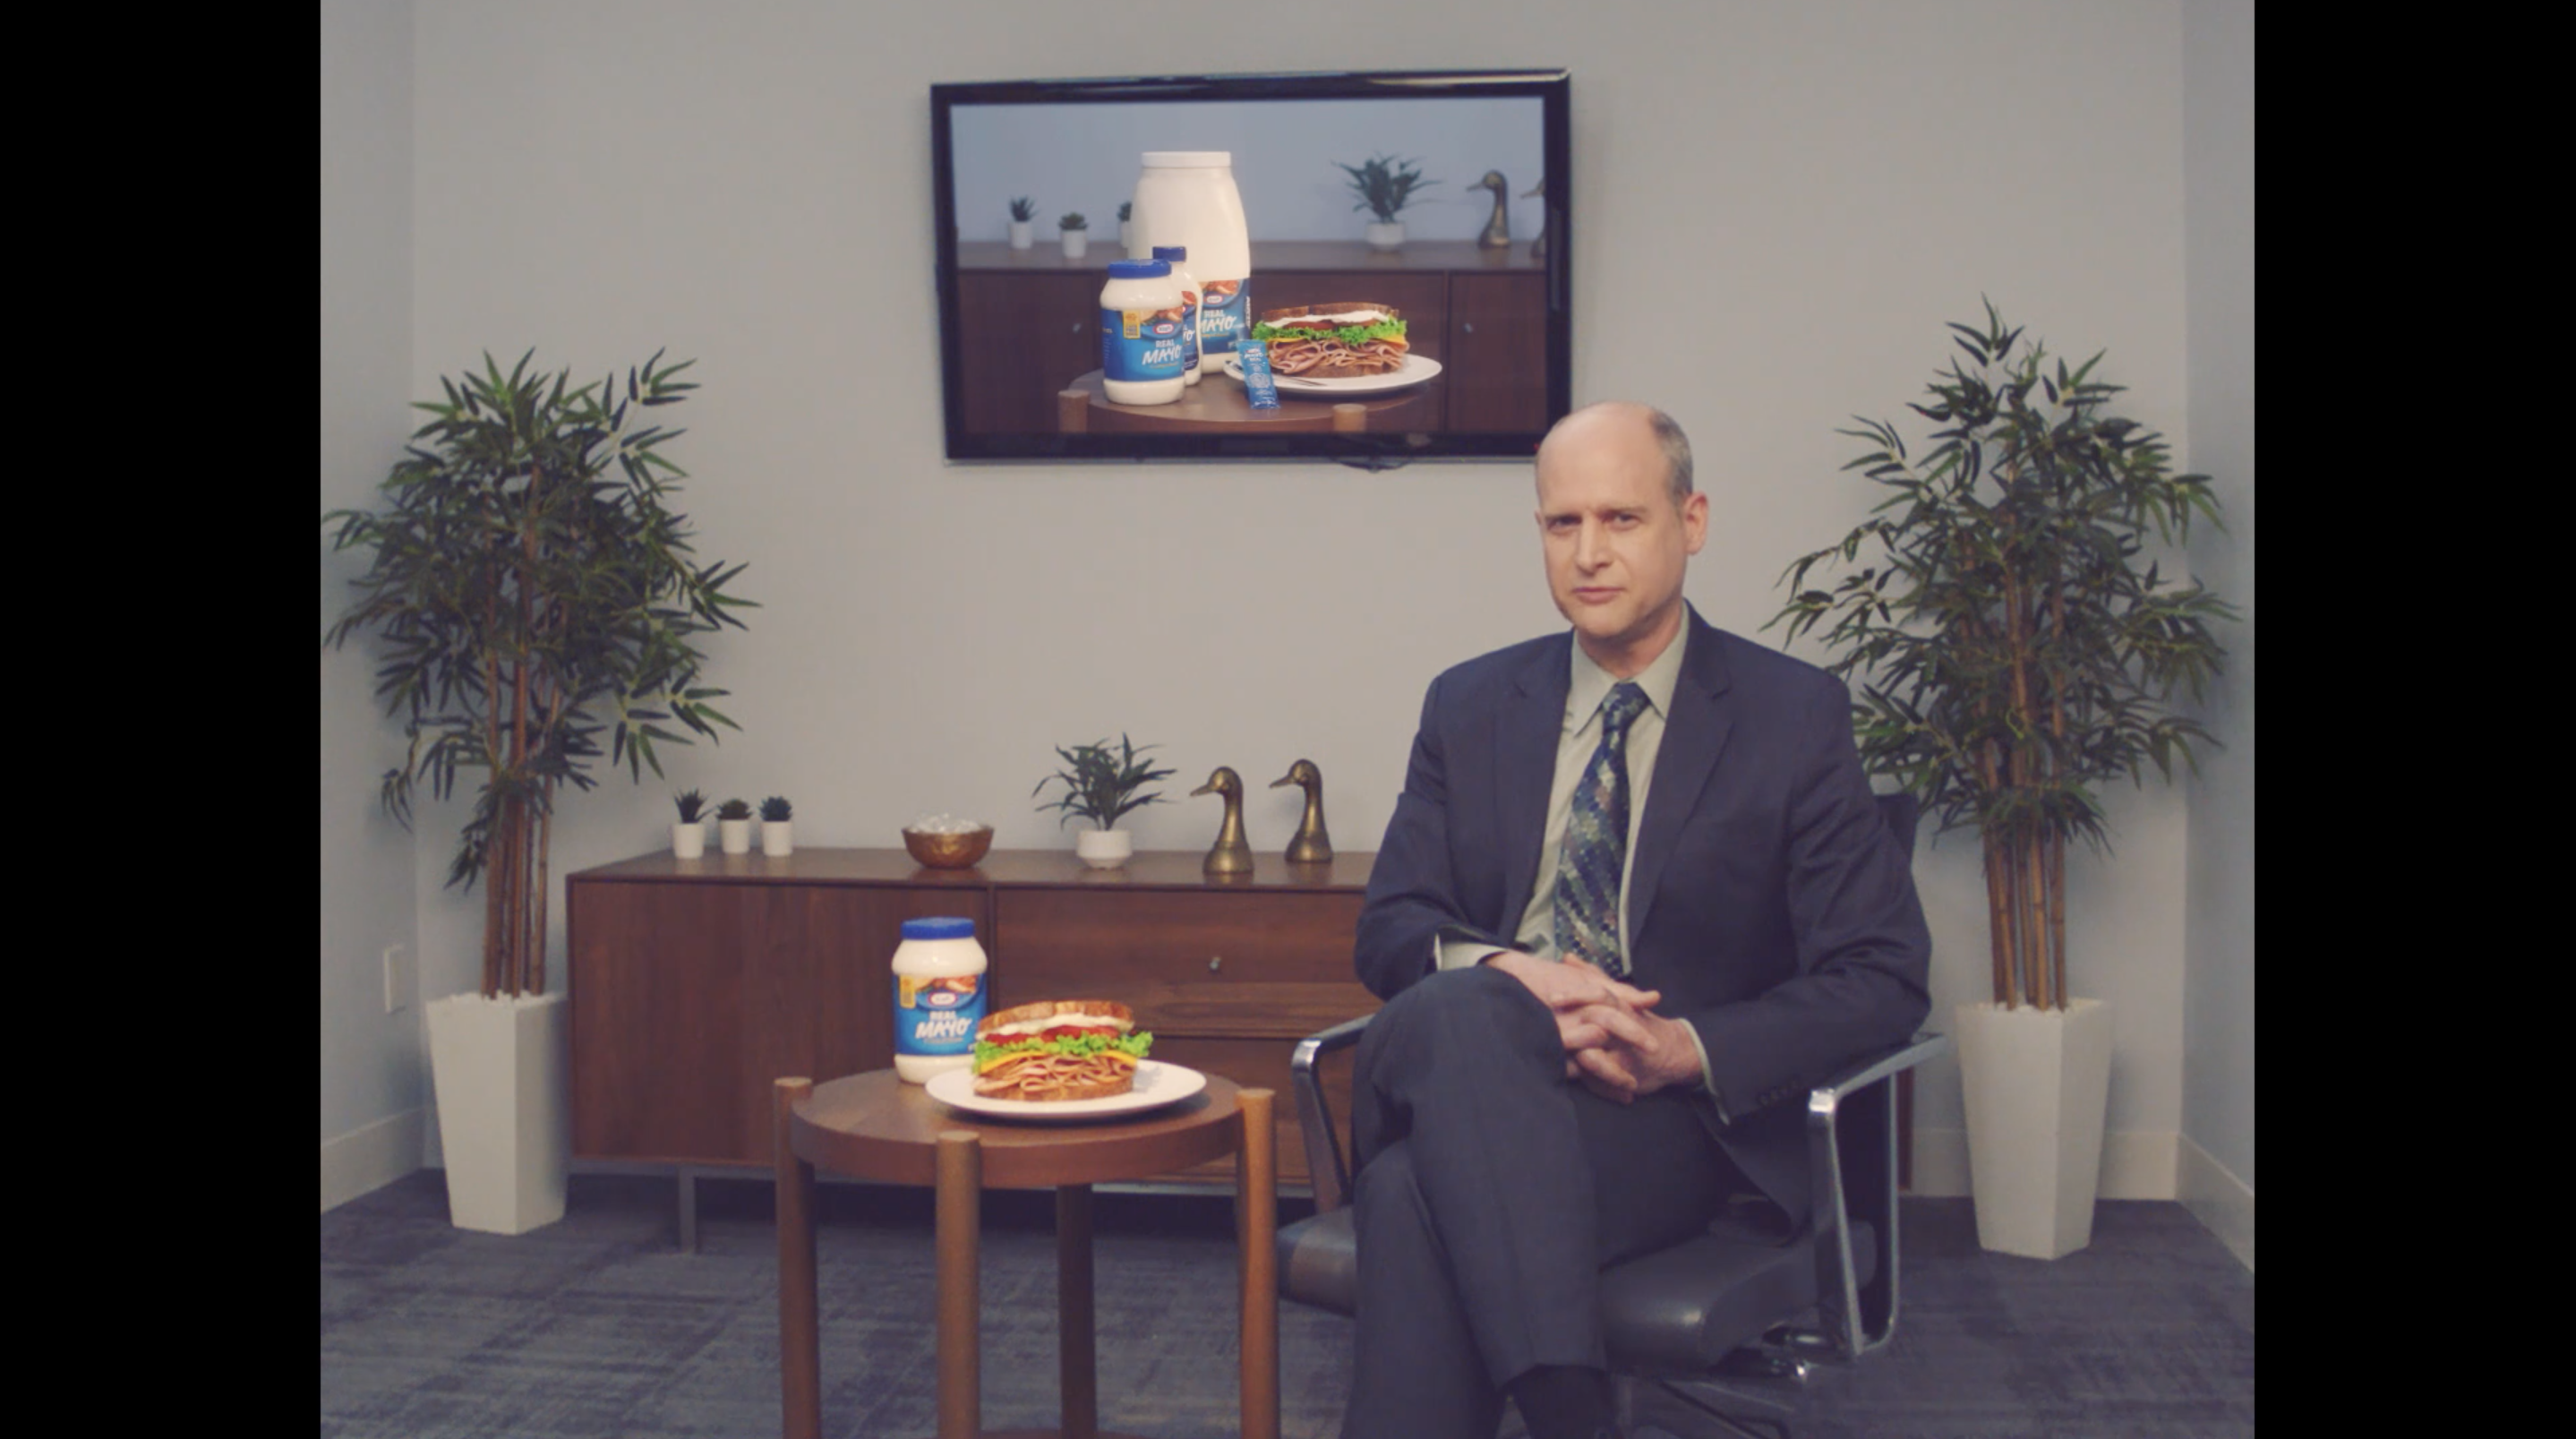 a man sitting in a chair with a sandwich and jar of mayo on the table beside him